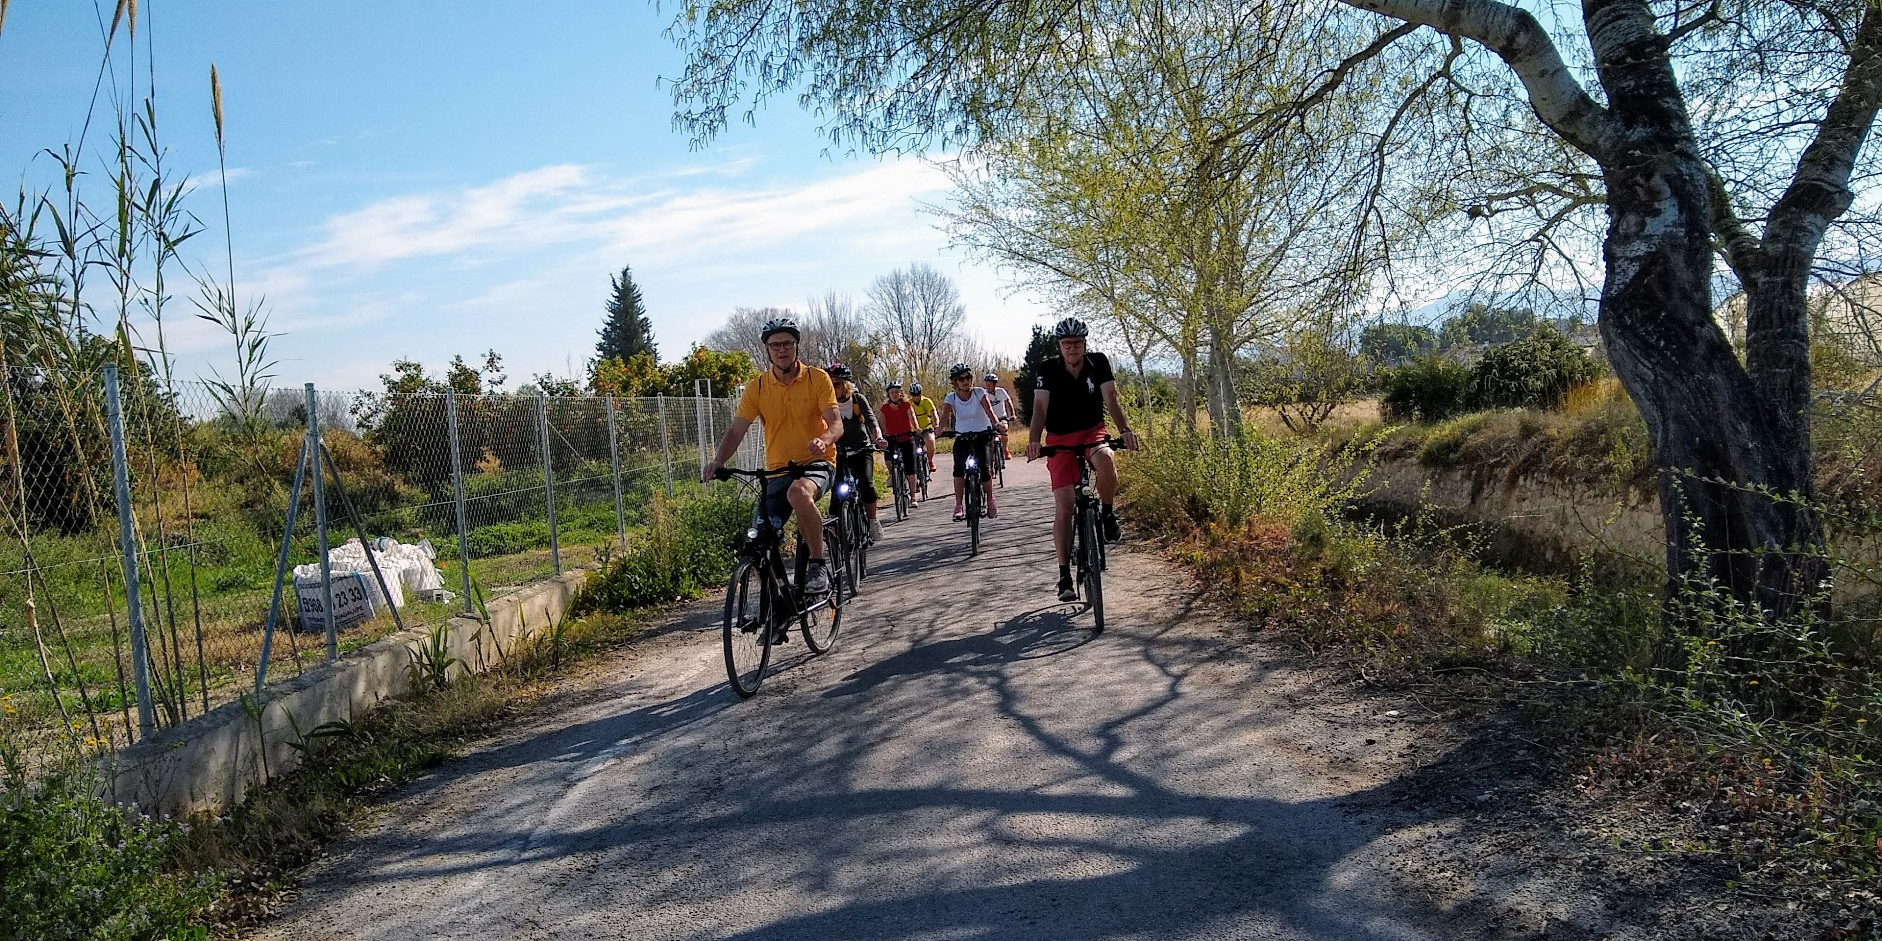 MURCIA'S ORCHARDS BIKE ROUTE + TAPA